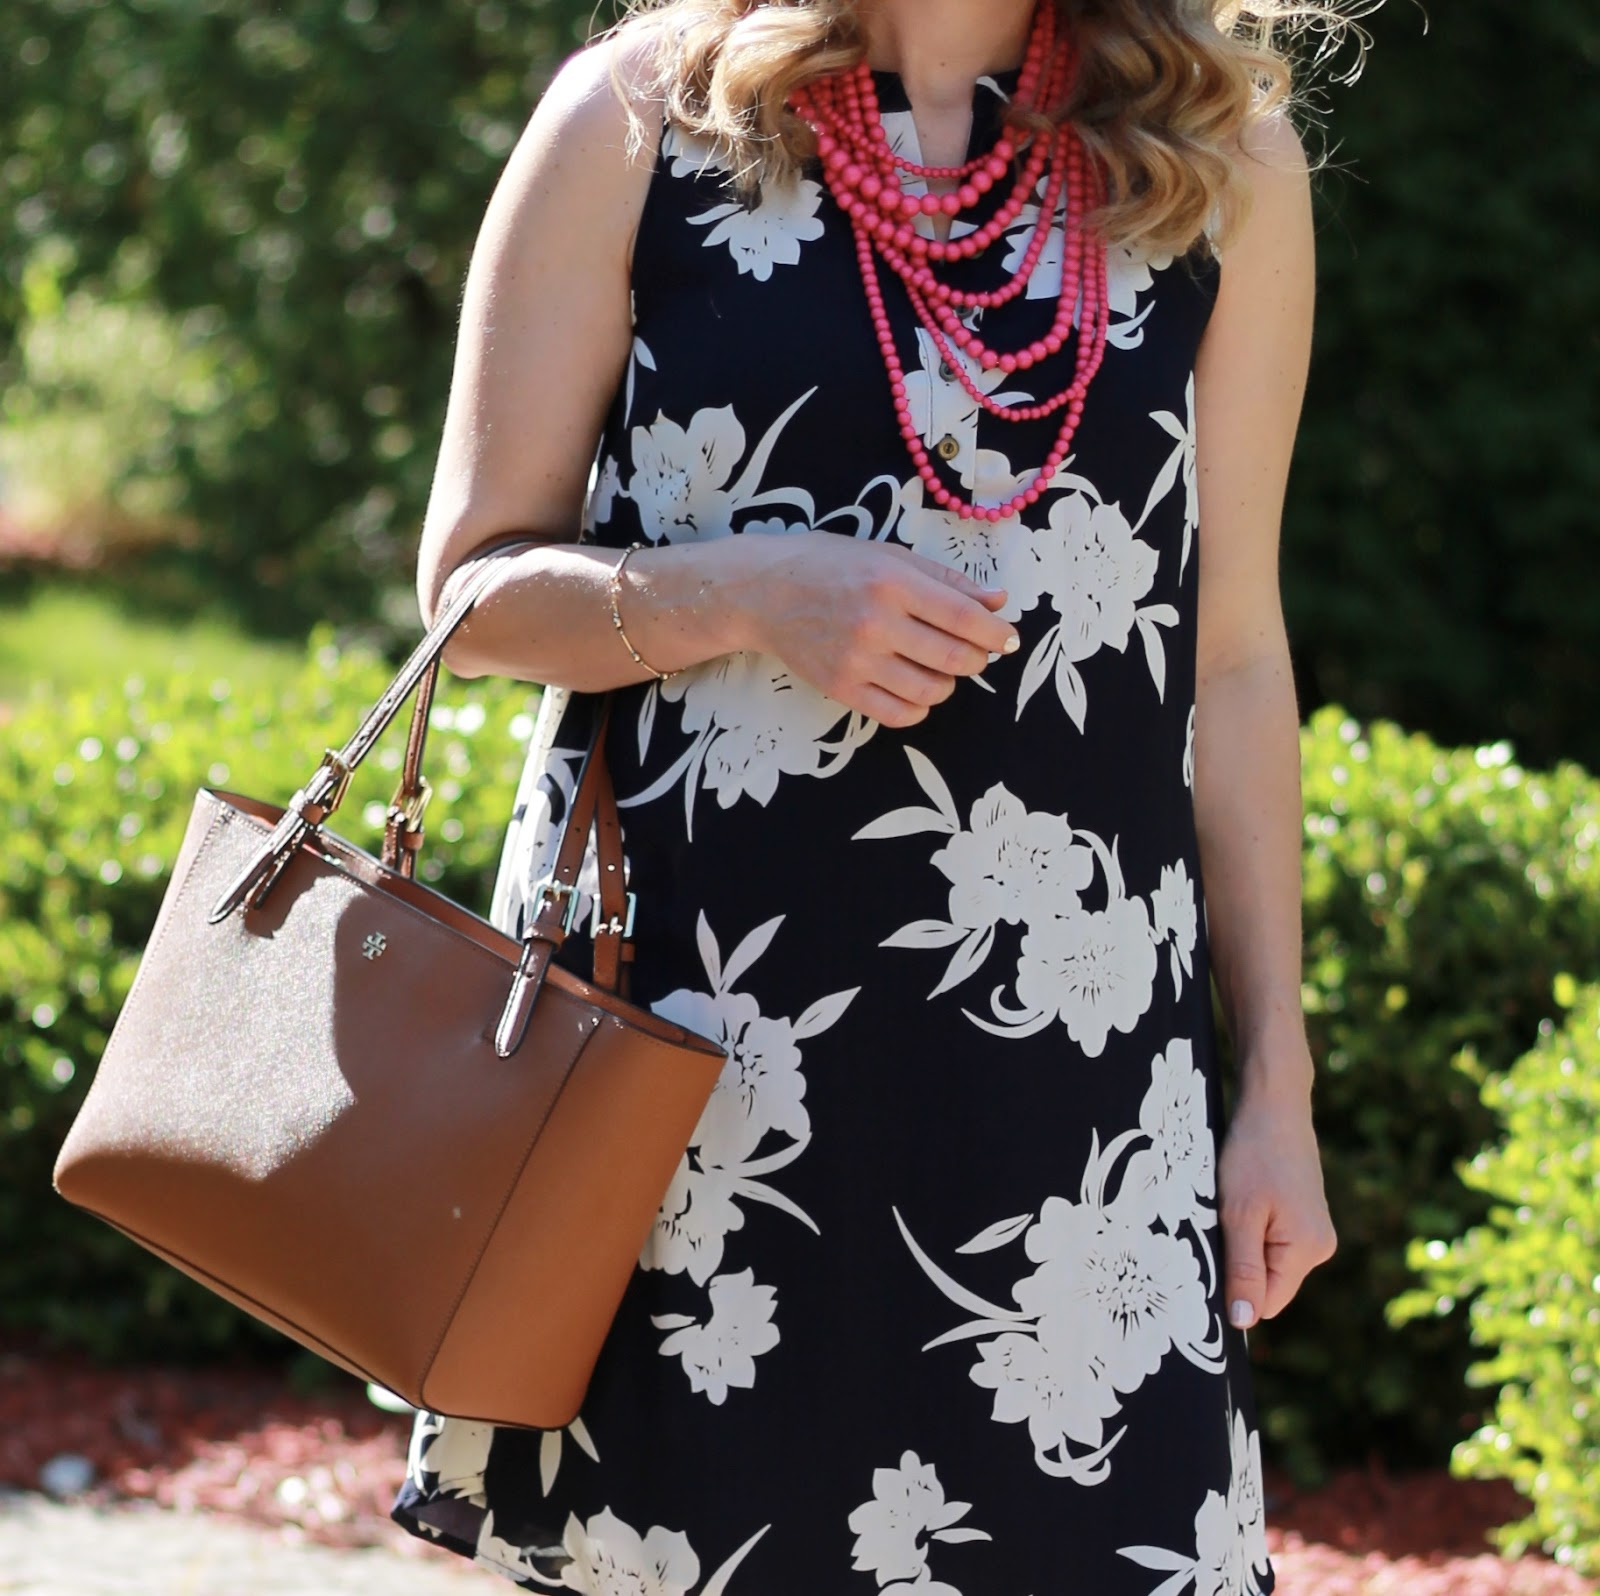 Pink Blush Navy Floral Button Front Maternity Dress, pink beaded statement necklace, Tory Burch Tote, Steve Madden wedges, second trimester summer maternity outfit